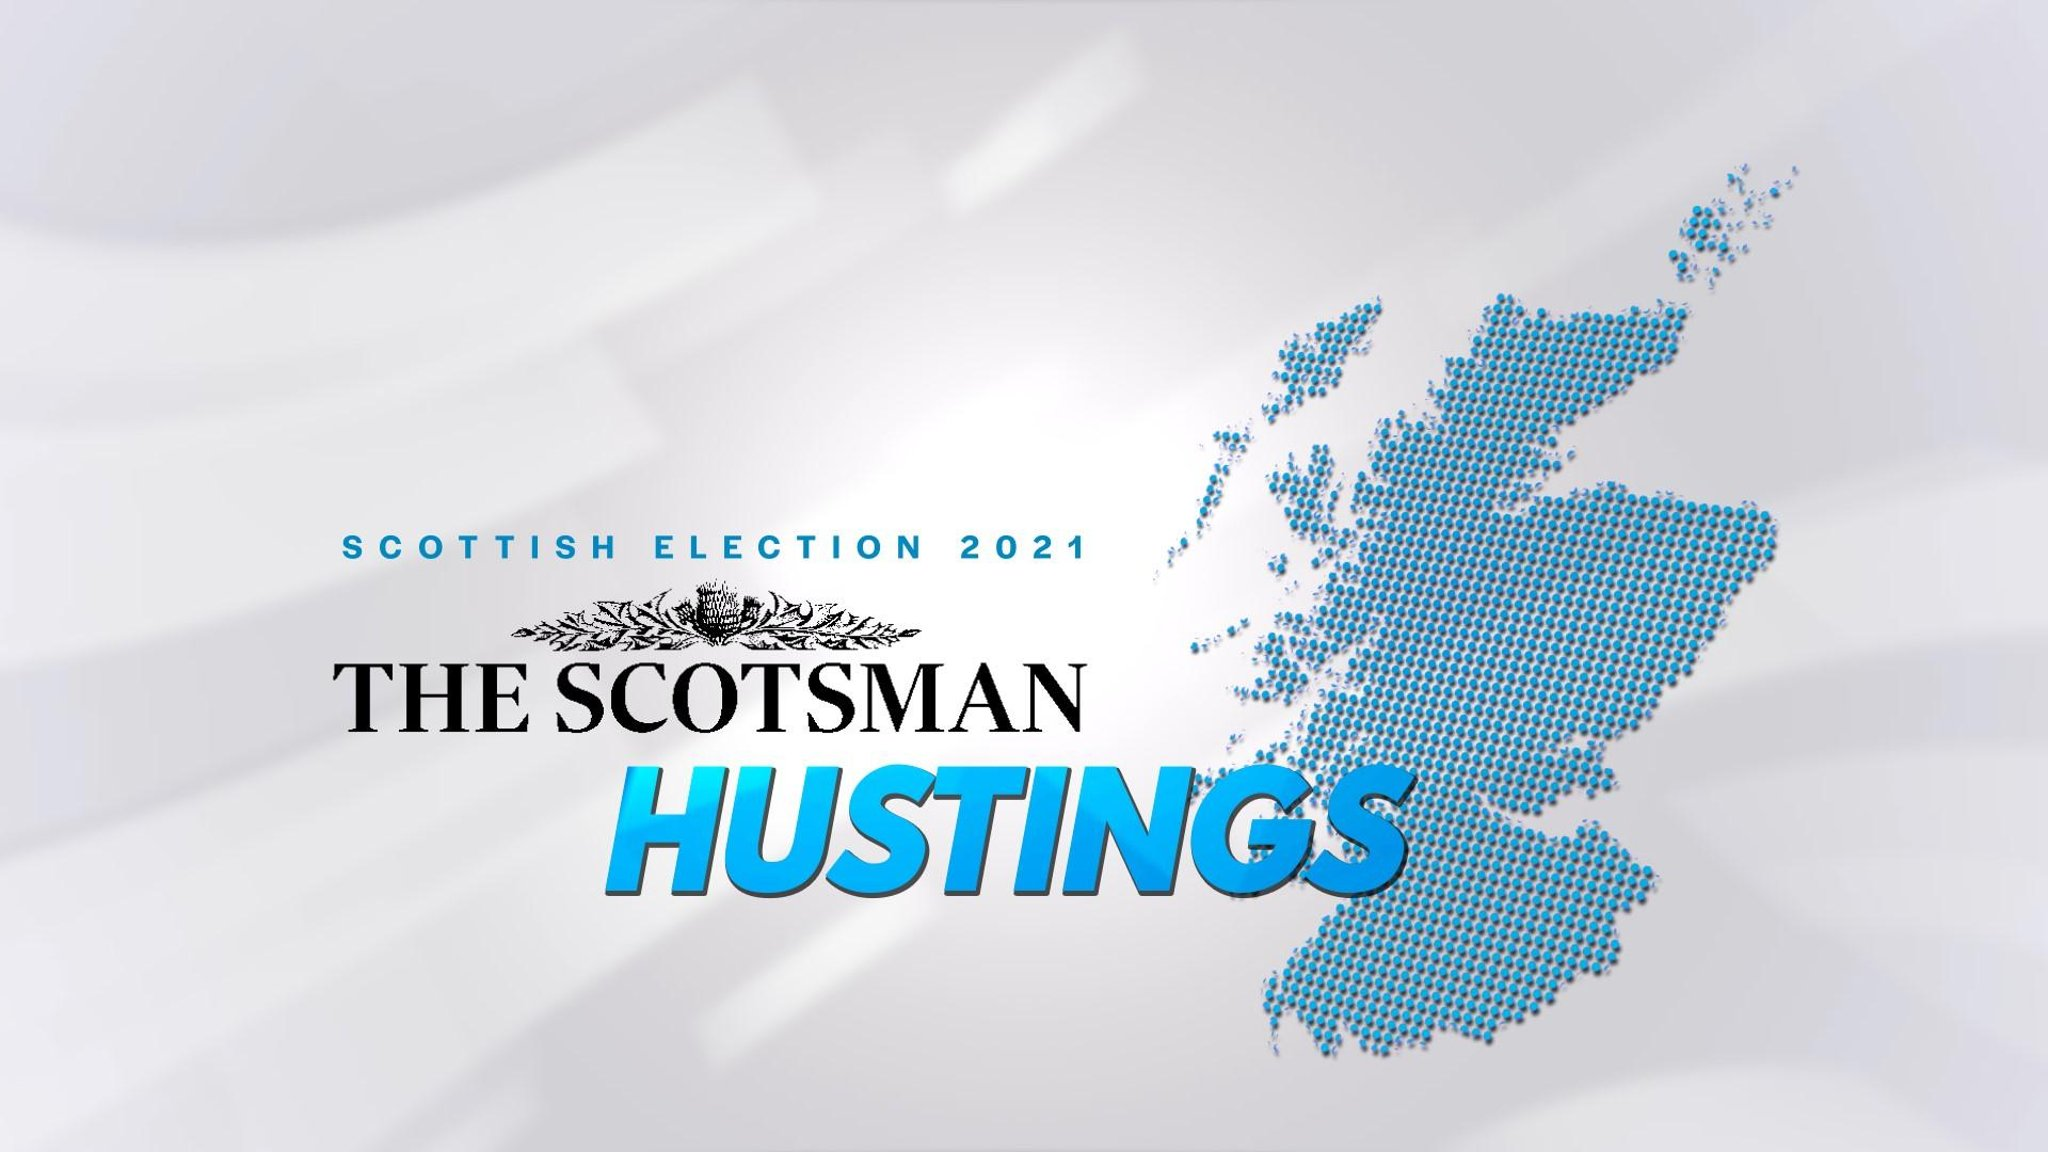 Neale Hanvey to fly flag for Alba Party on Scotsman election virtual hustings